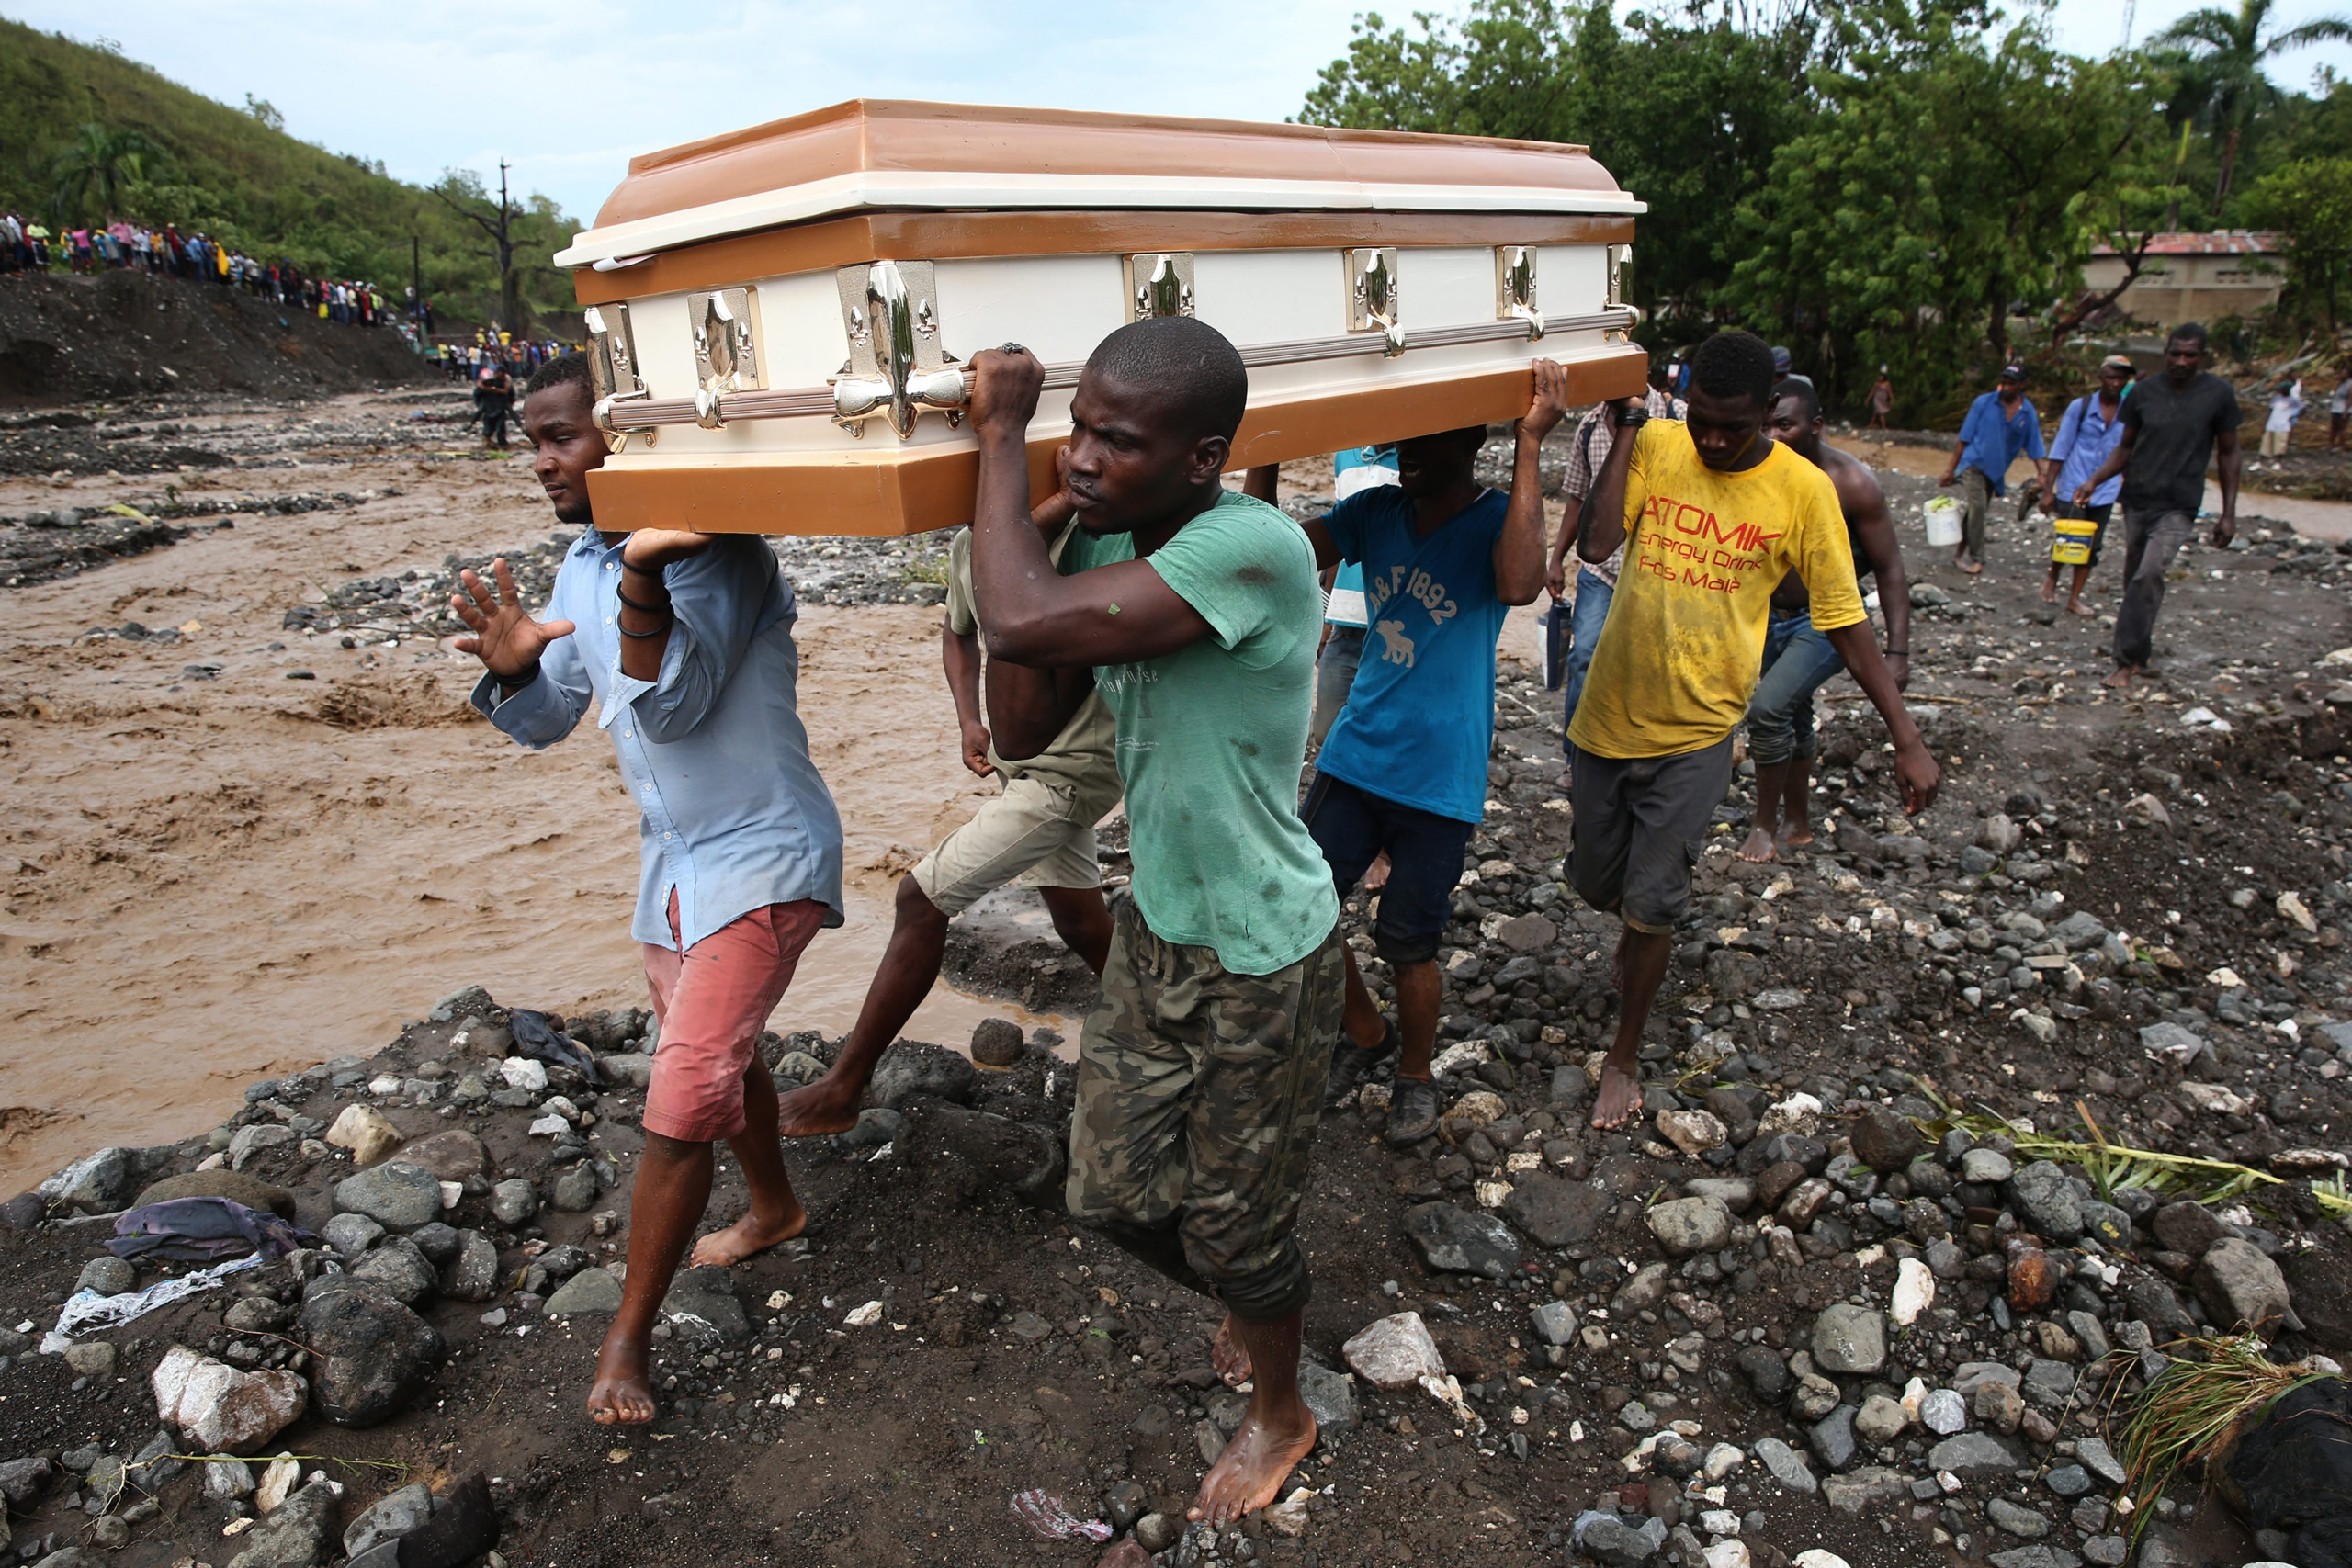 A group of people carry a coffin and try to cross the river La Digue, after the collapse of the only bridge that connects to the south after the passing of hurricane Matthew in the country, in Petit Goave, Haiti, on Oct. 5, 2016.